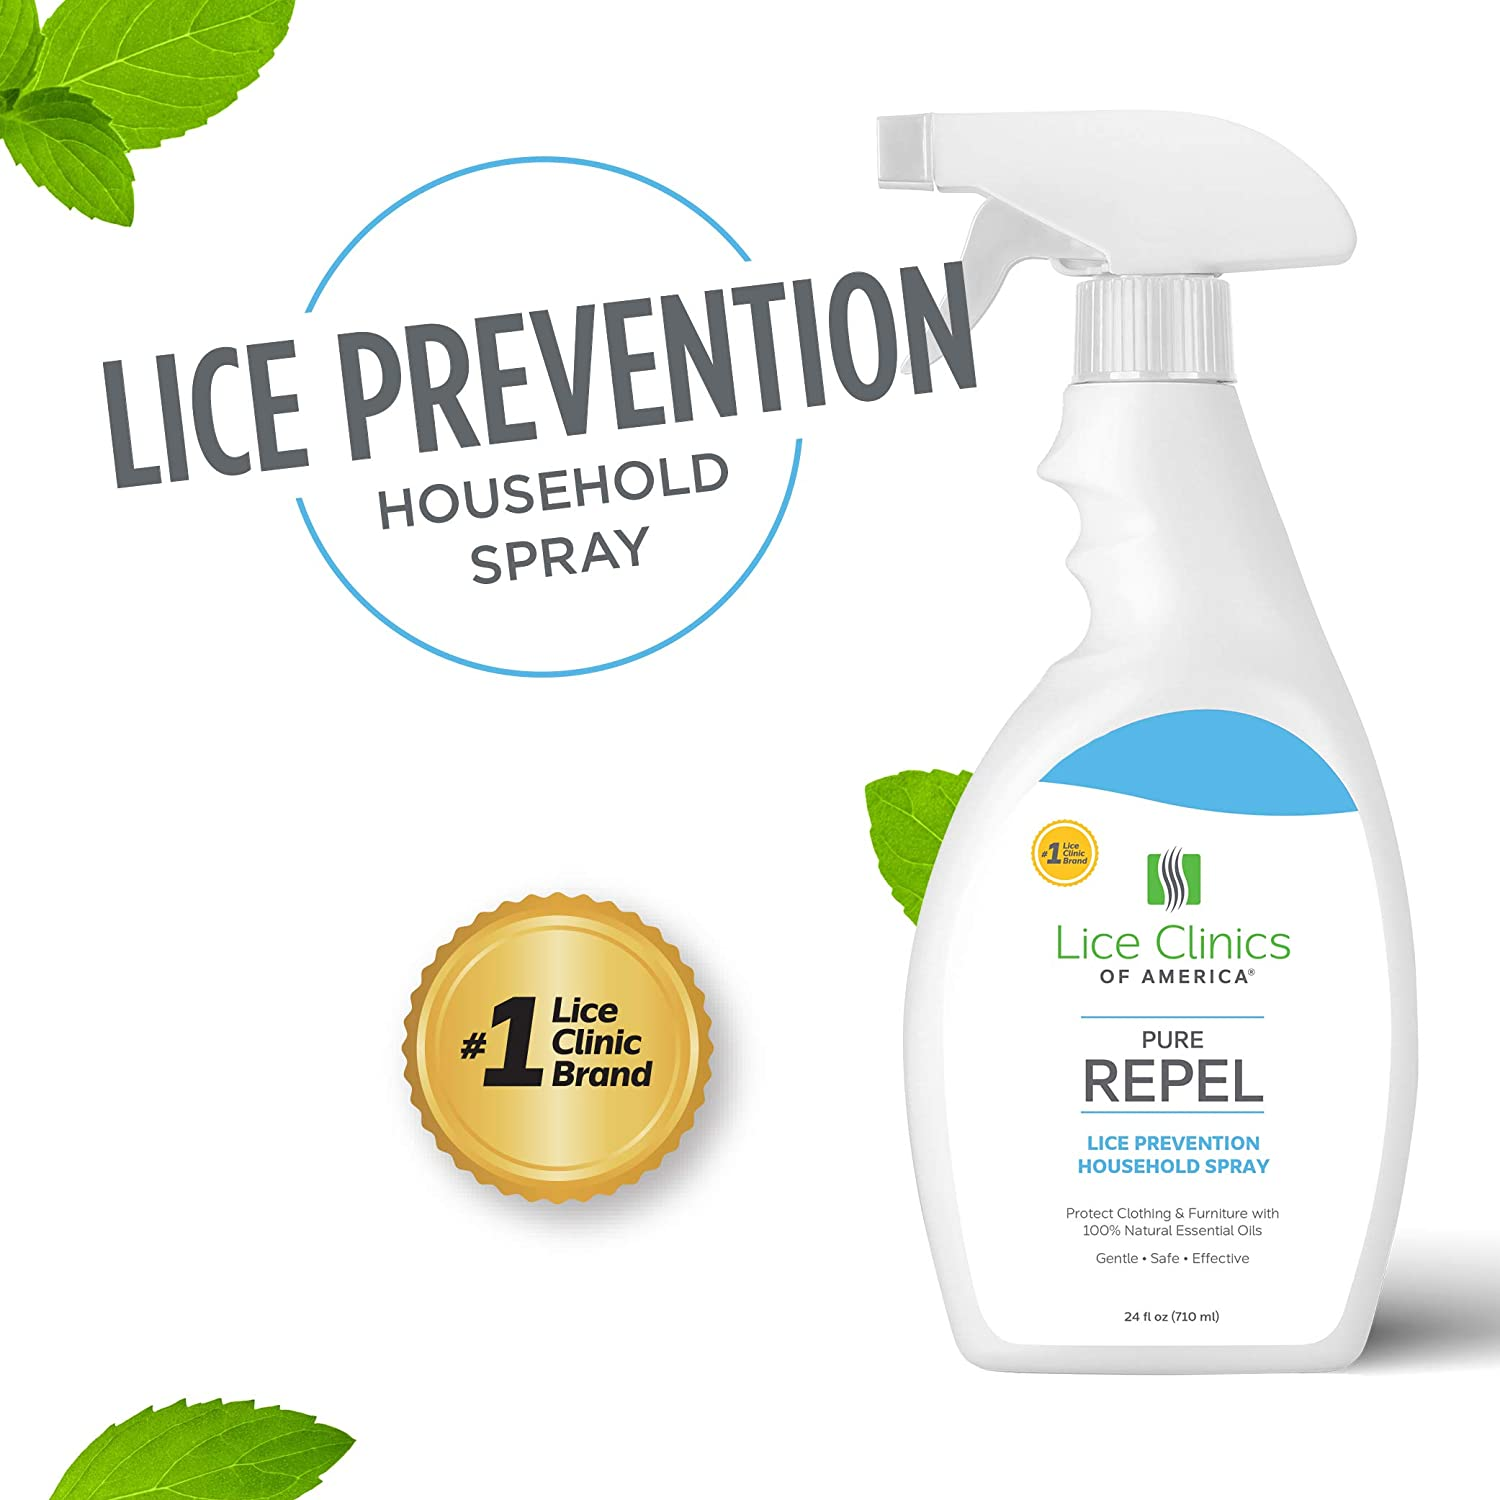 Lice Clinics of America Lice Prevention Household Spray – Keep Lice Away from Clothing, Furniture, and More!